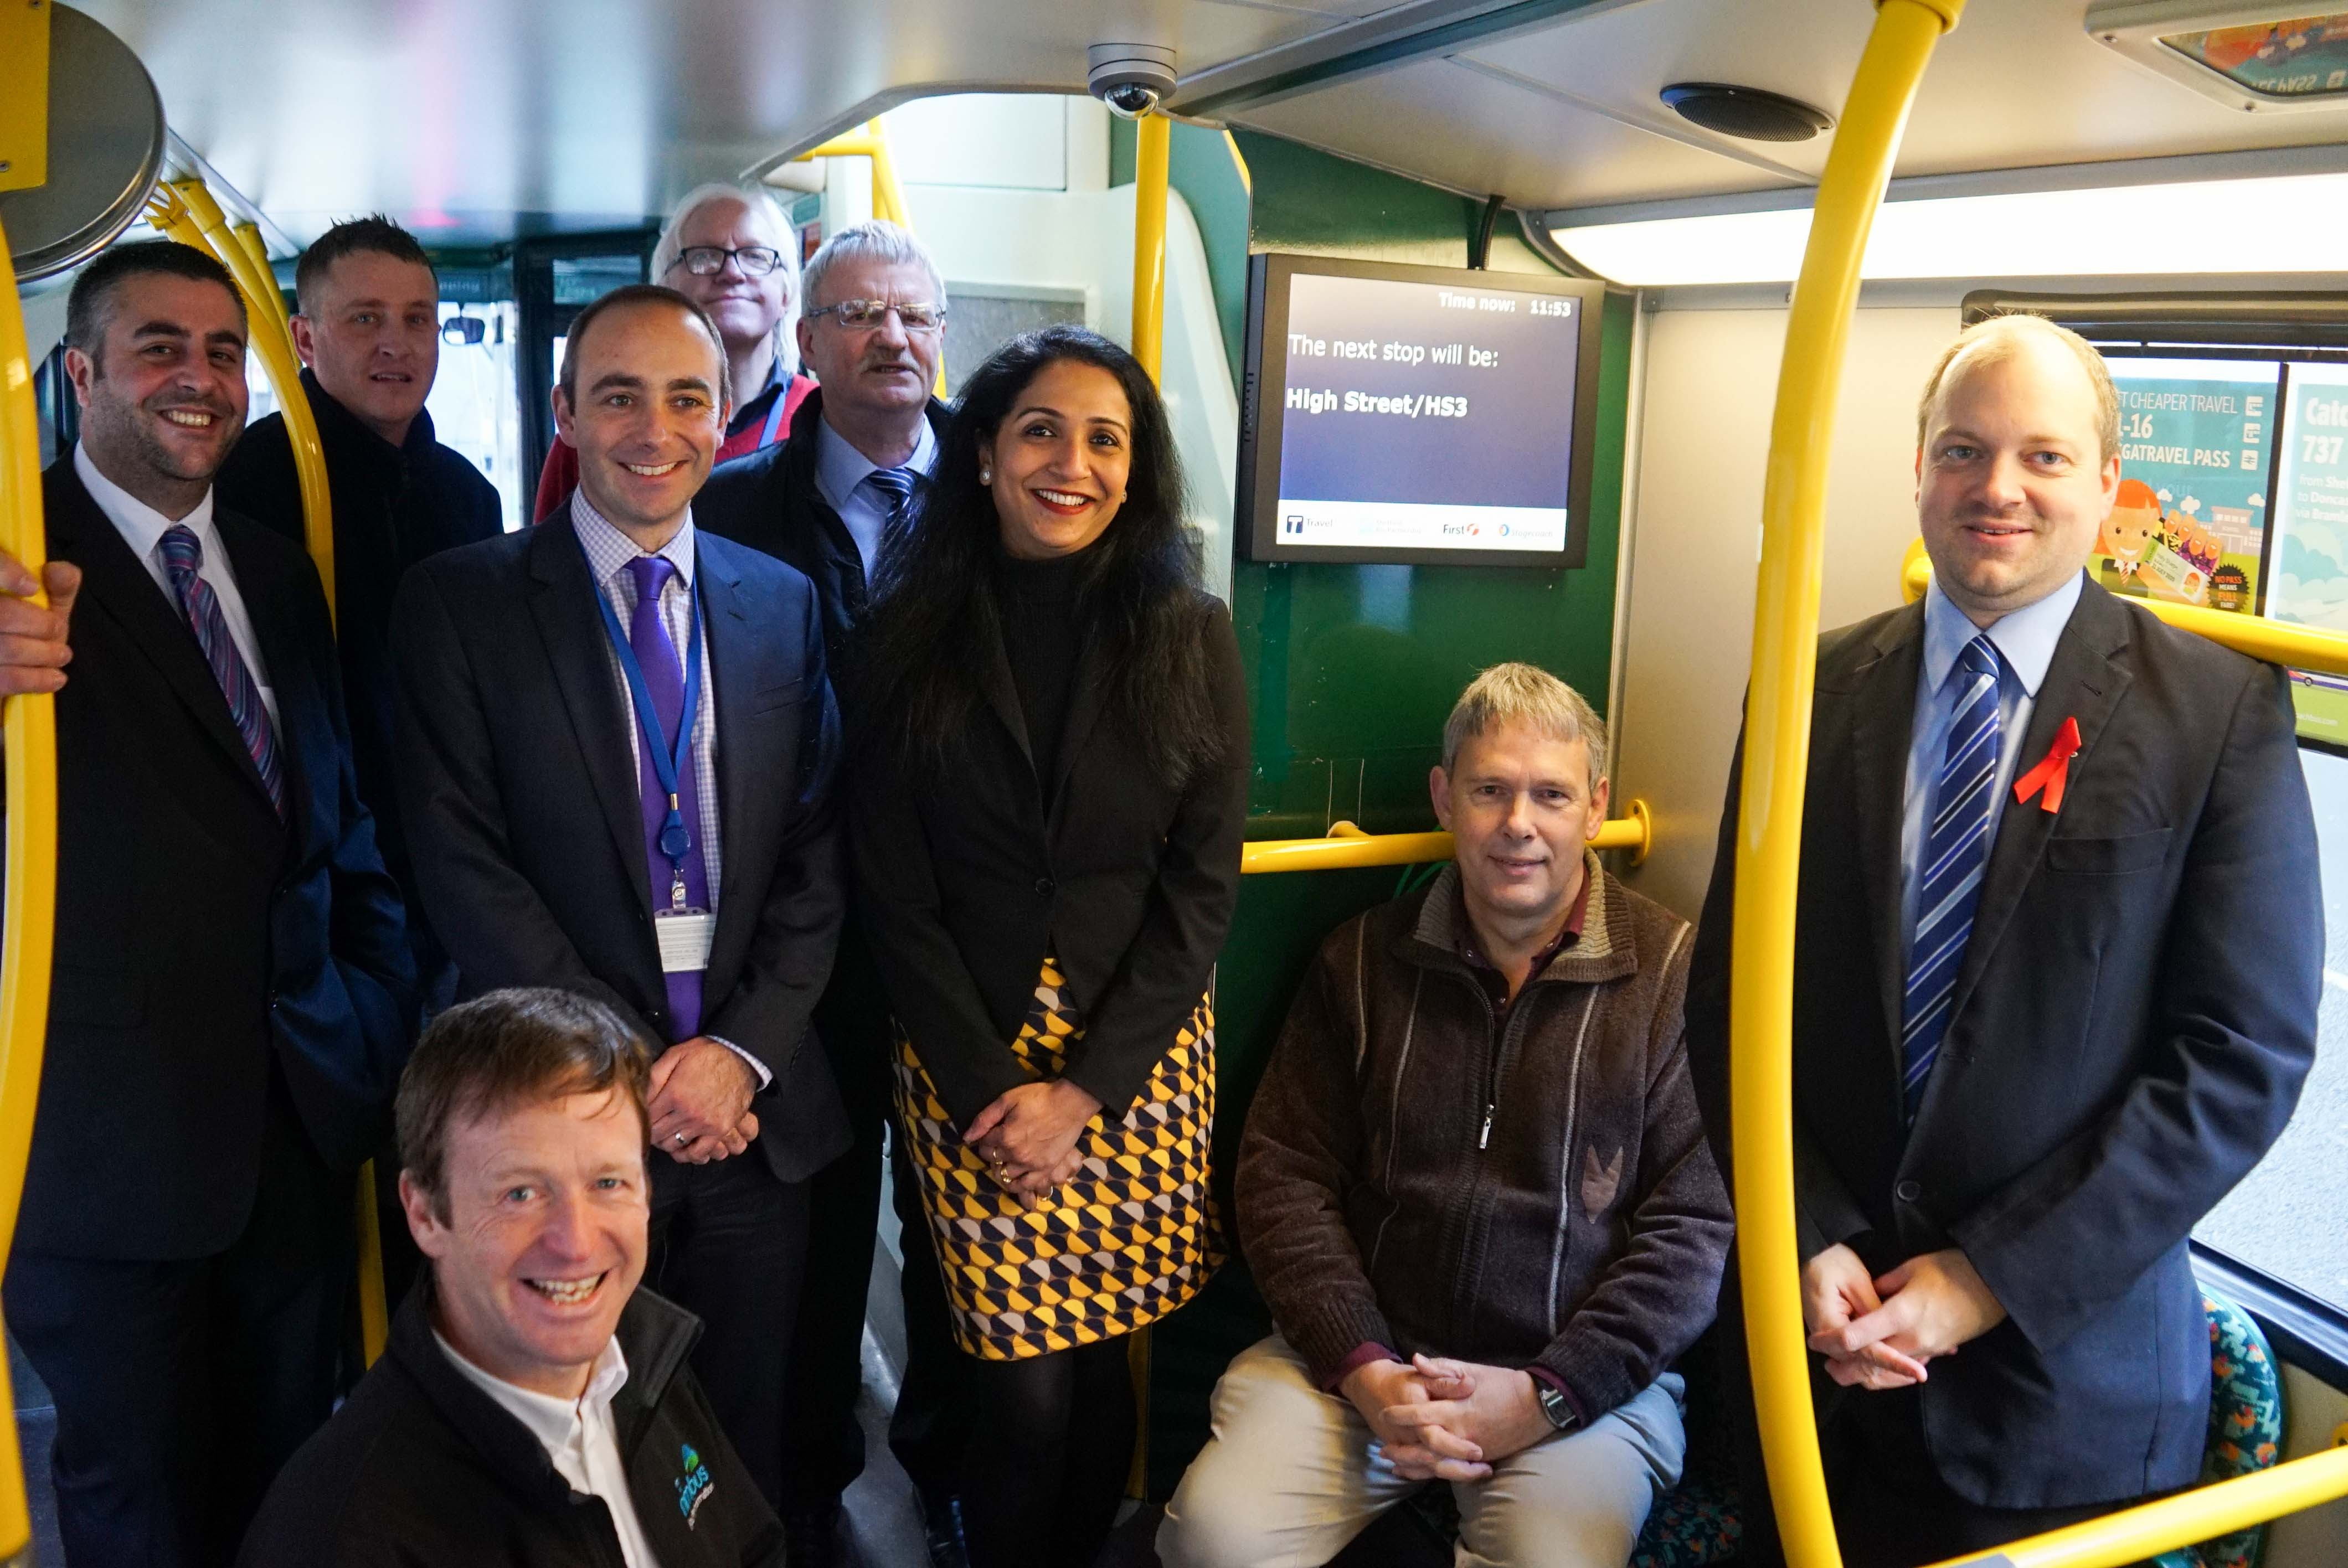 Talking Buses come to Sheffield